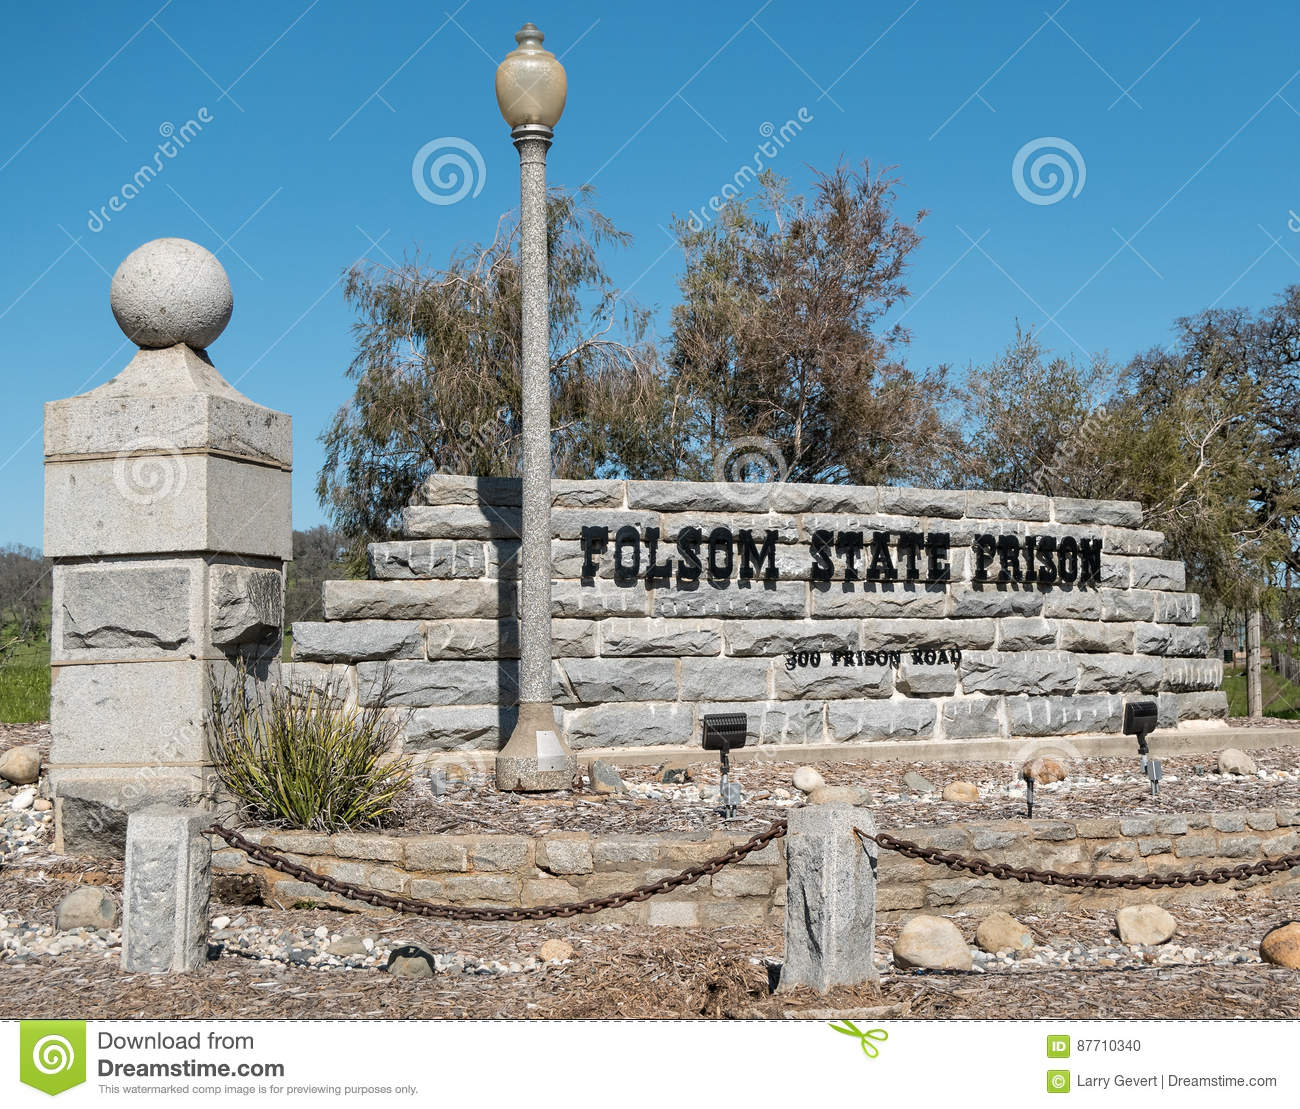 folsom state prison Want to work for folsom state prison get the best facts on folsom state prison's employee reviews, salaries, interviews, and even the culture overview here.